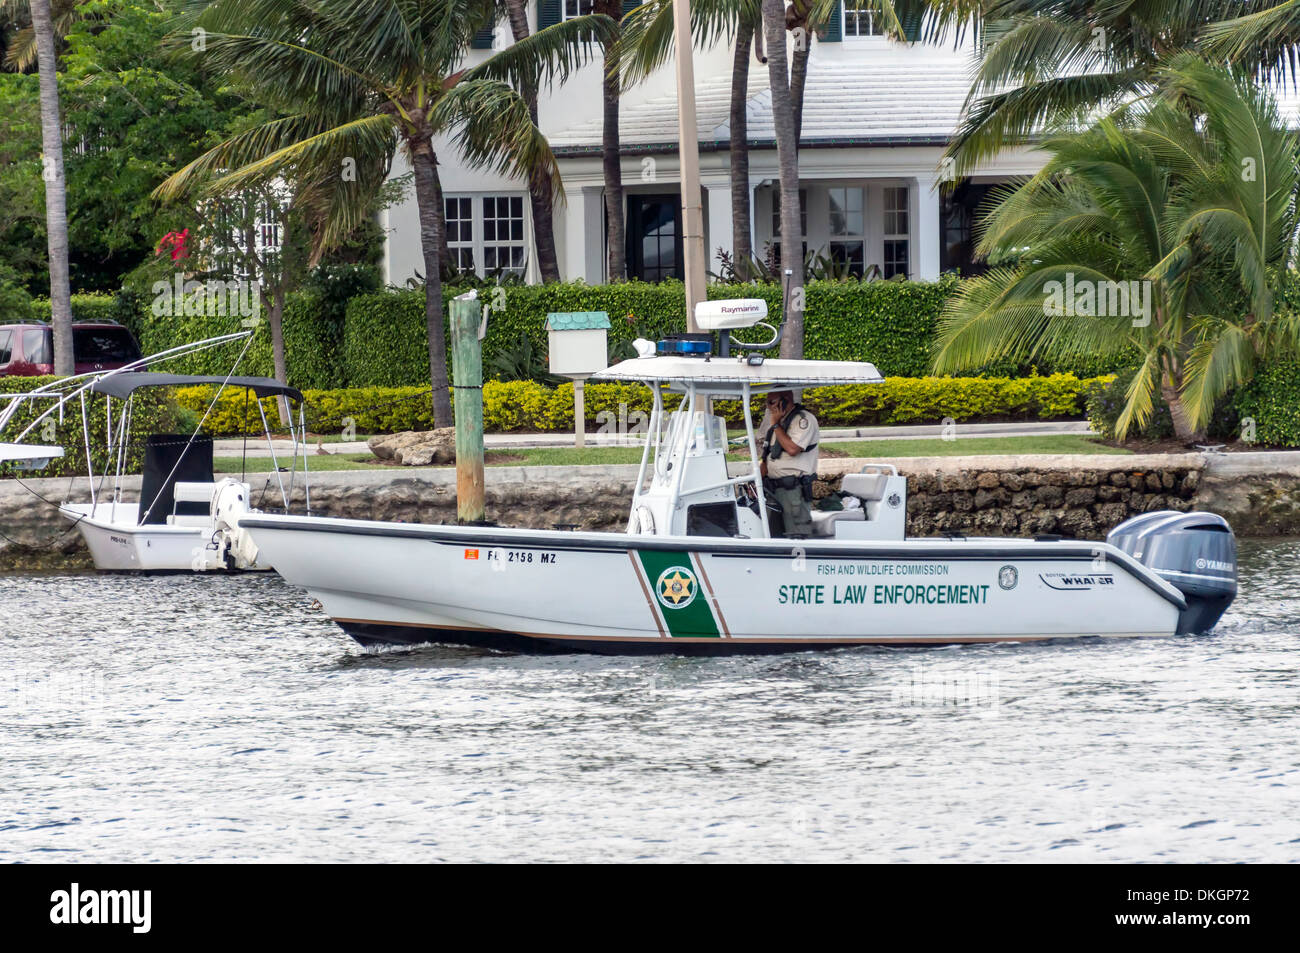 Male officer with Fish and Wildlife Commission driving Boston Whaler State law enforcement boat on Intracoastal Stock Photo